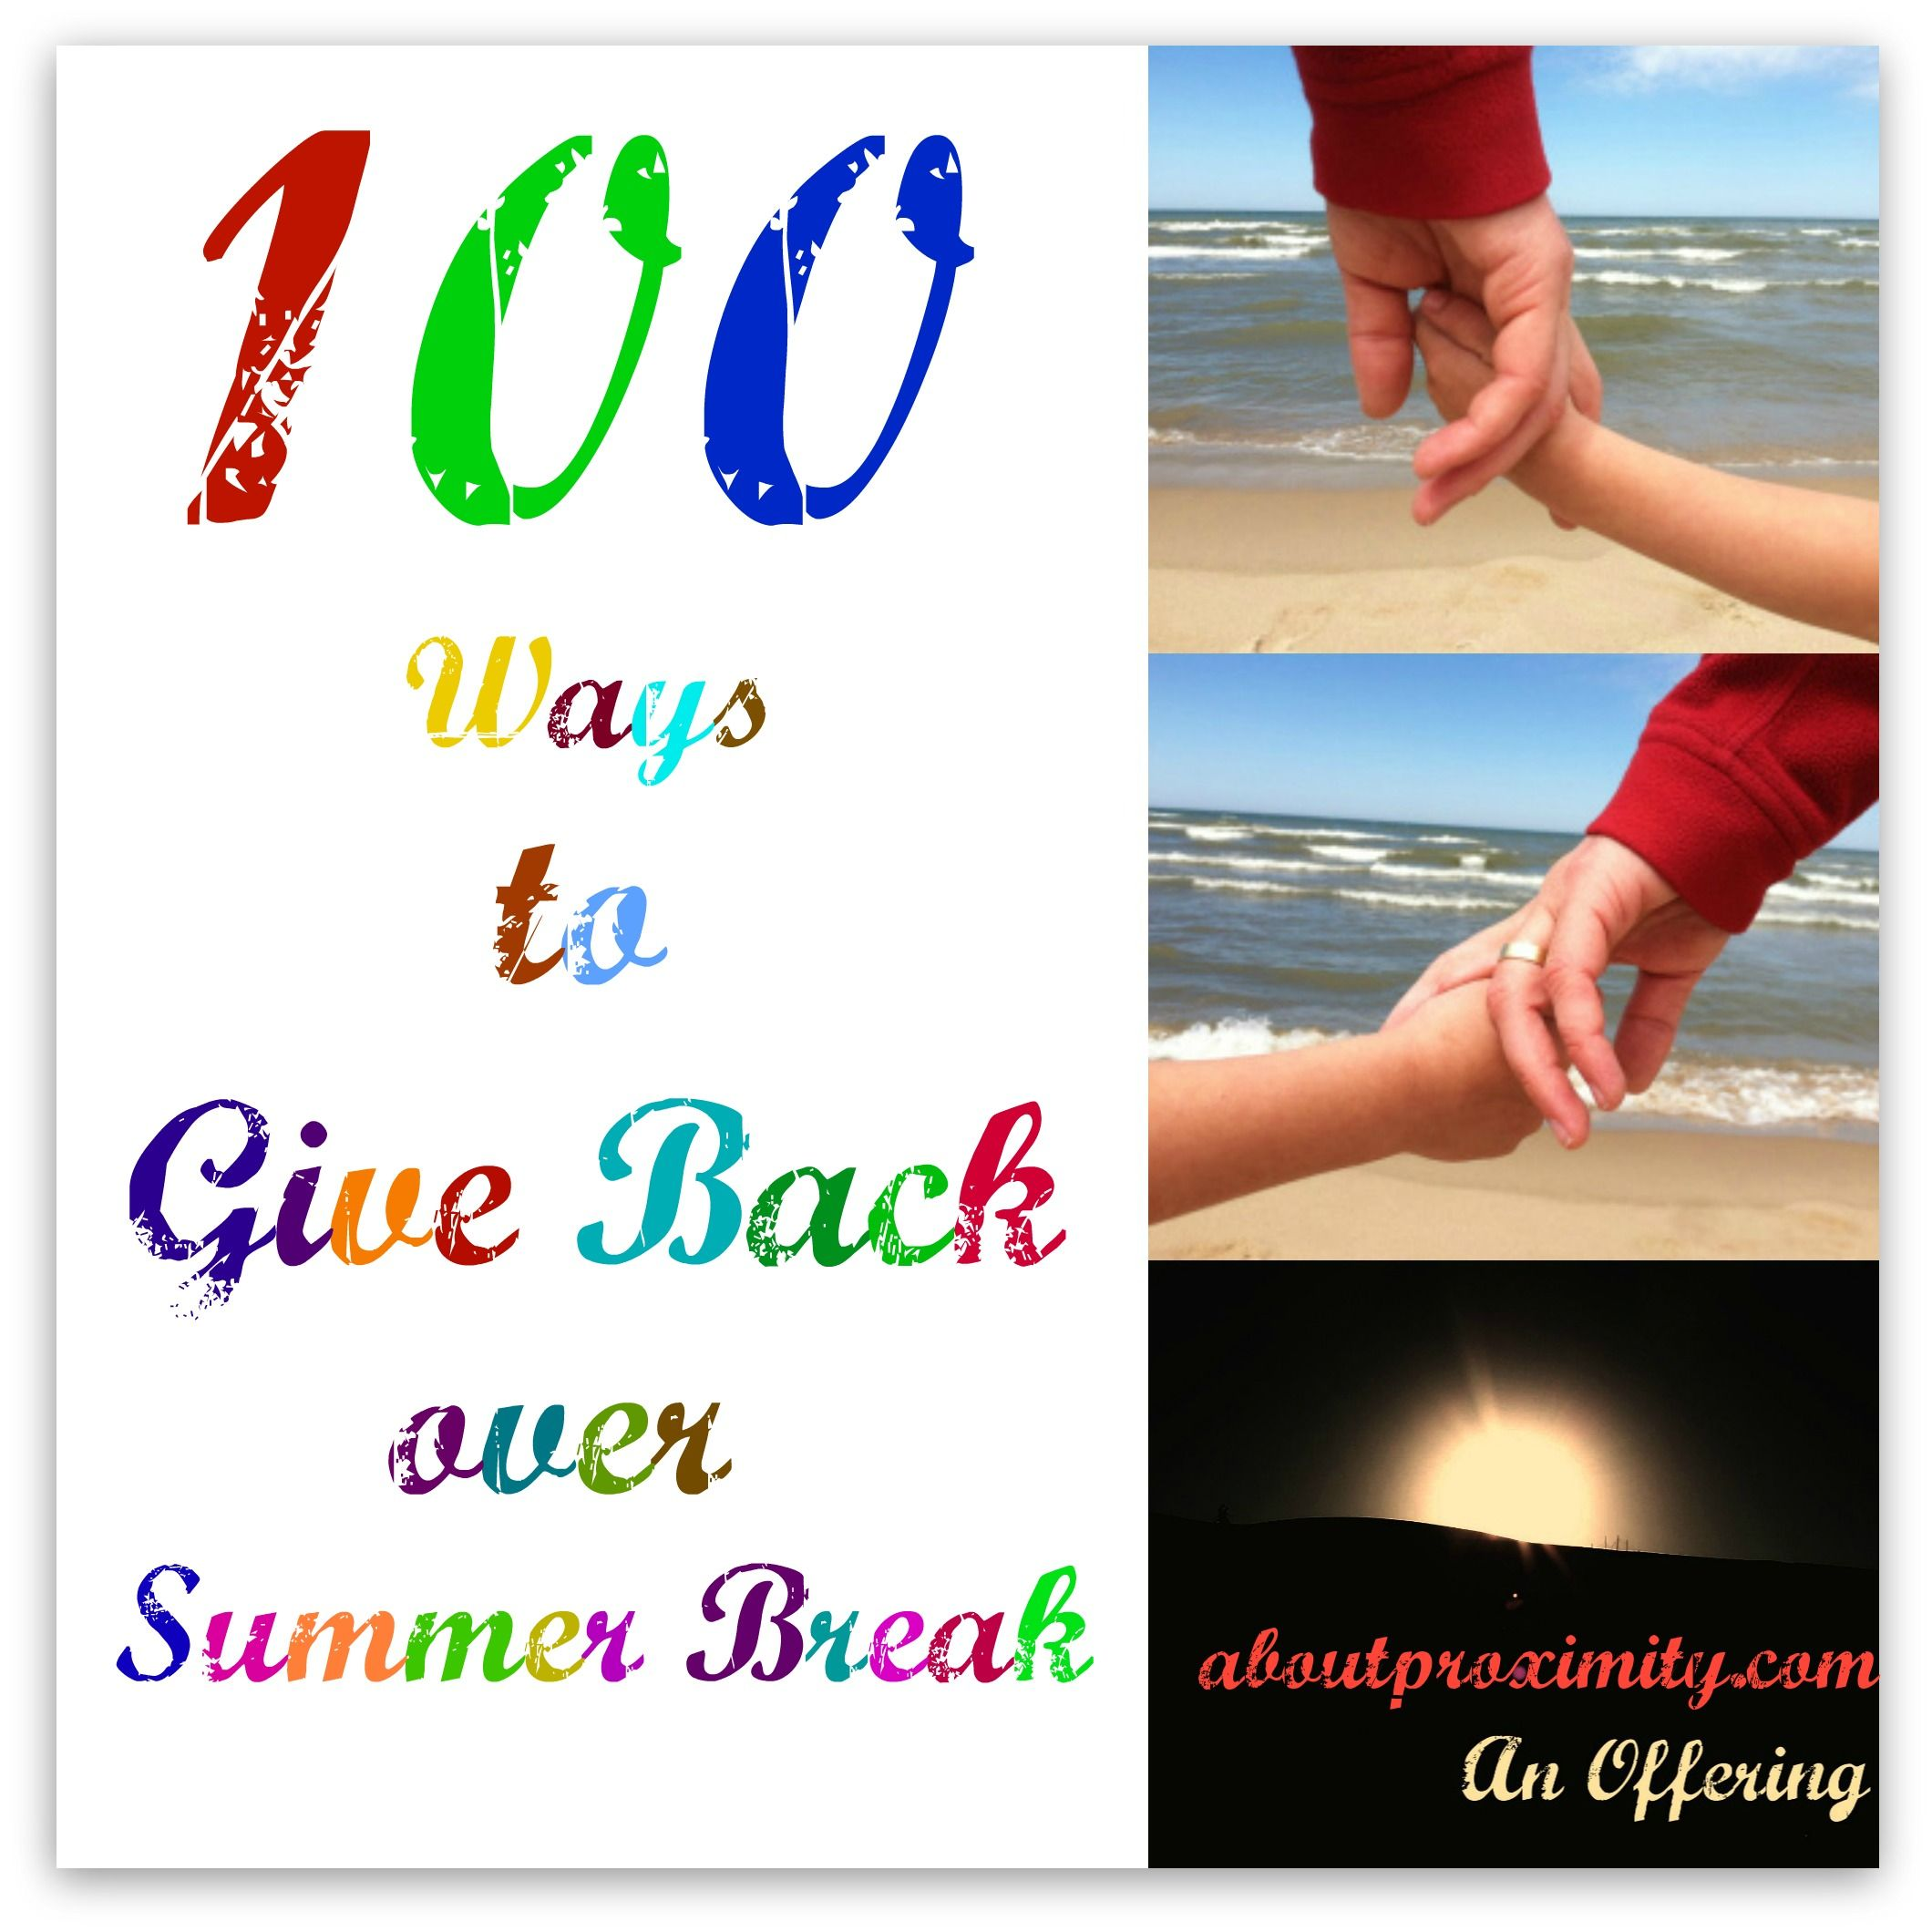 100 Ways To Give Back Over Summer Break With Images